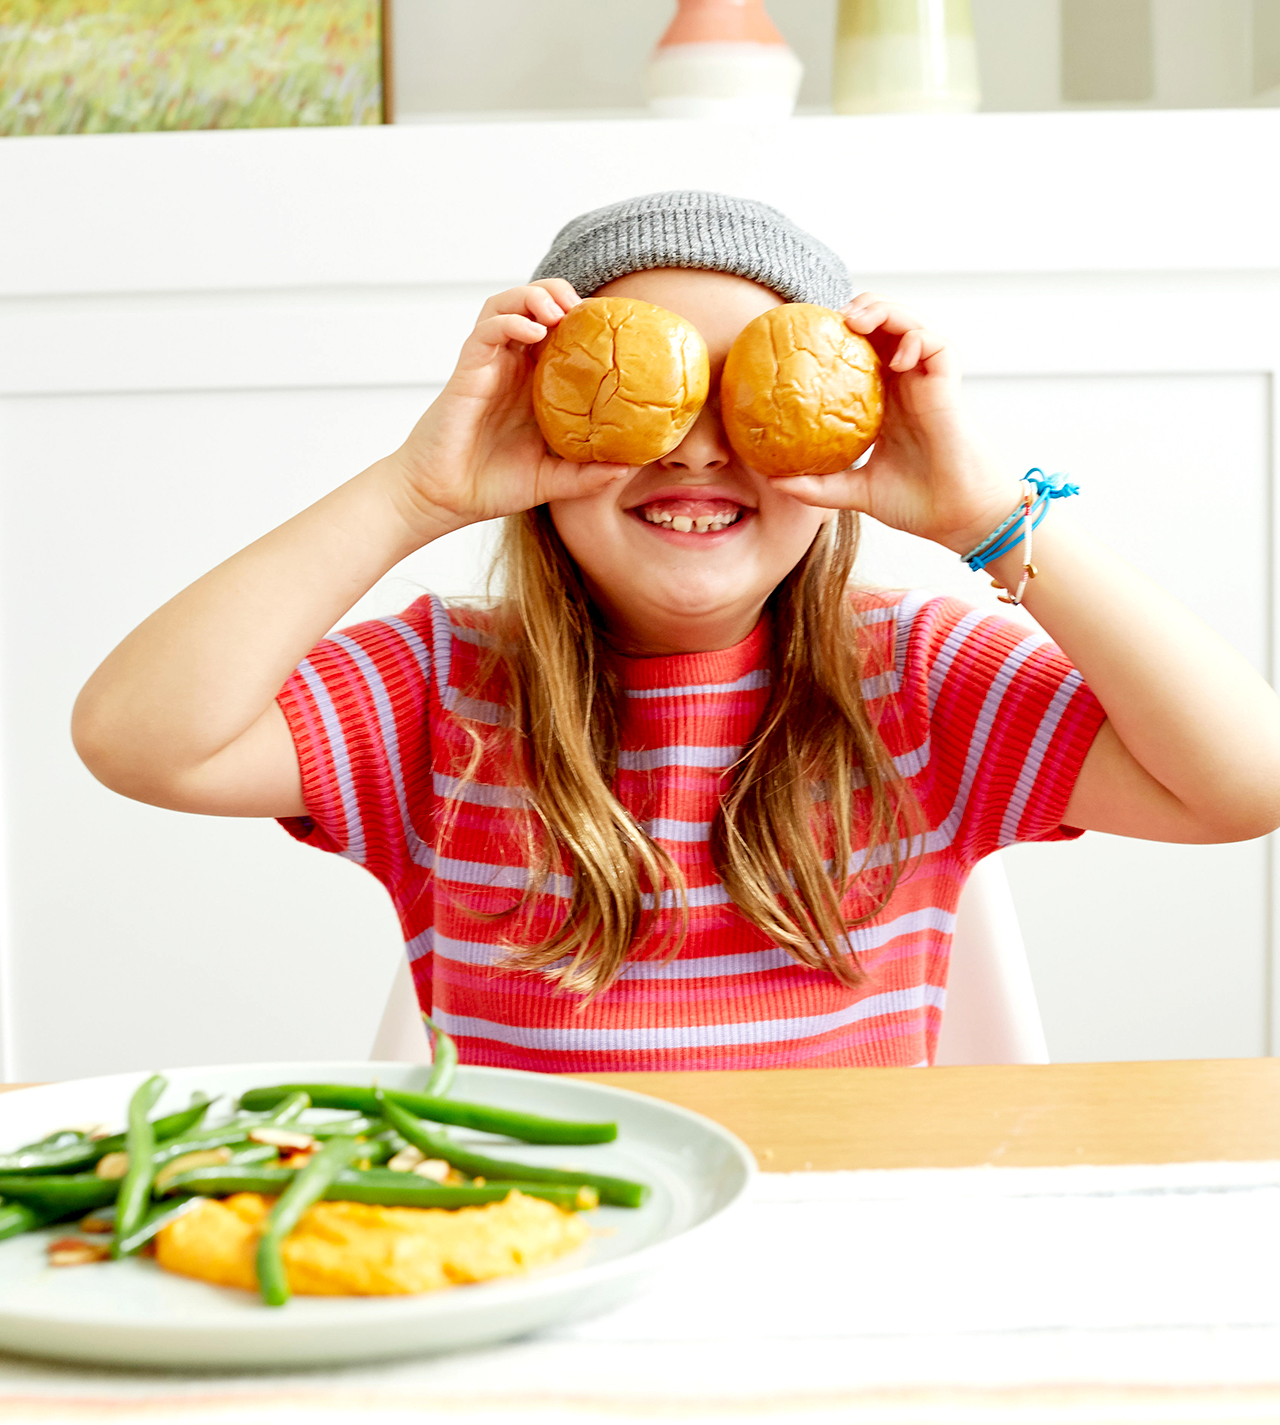 Child with buns over eyes while eating dinner